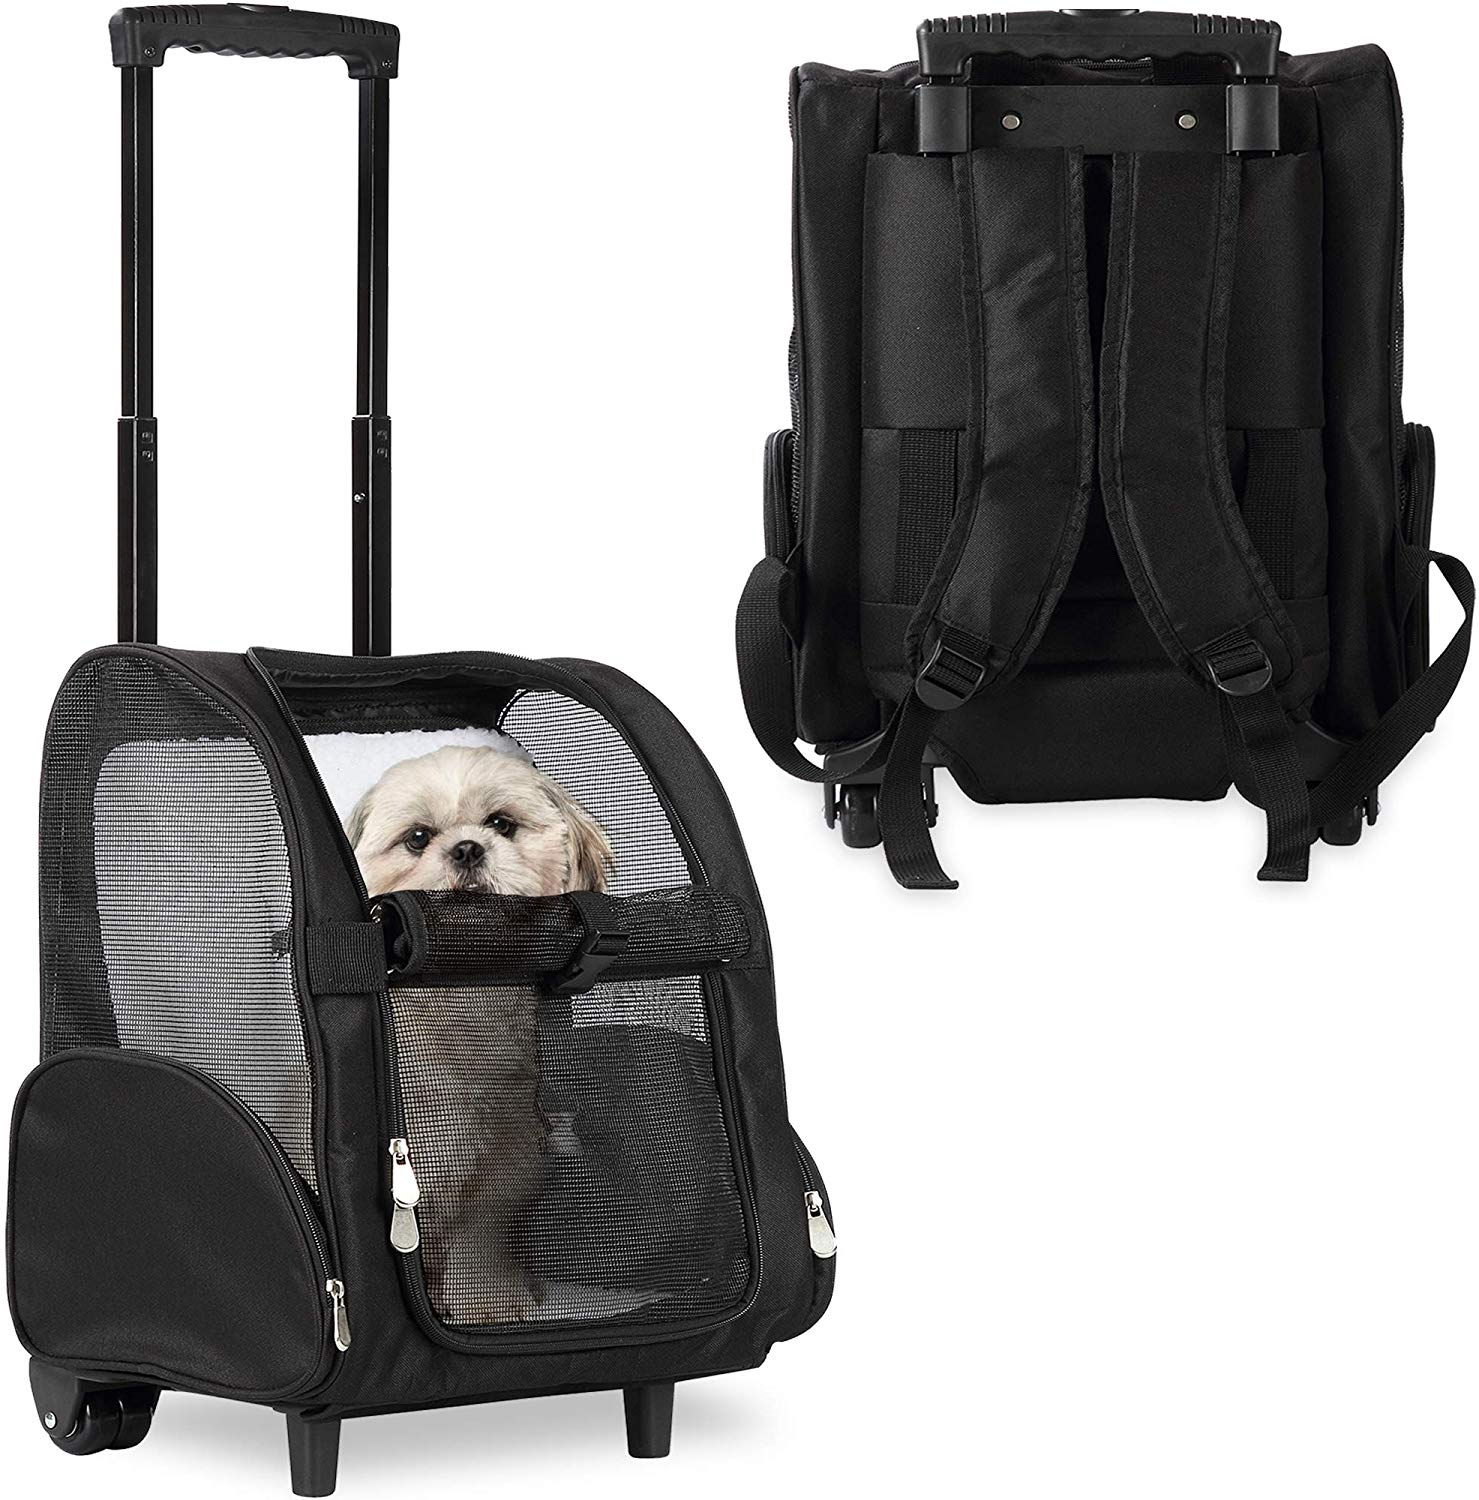 Deluxe Backpack Pet Travel Carrier with Wheels - Approved by Most Airlines - Black